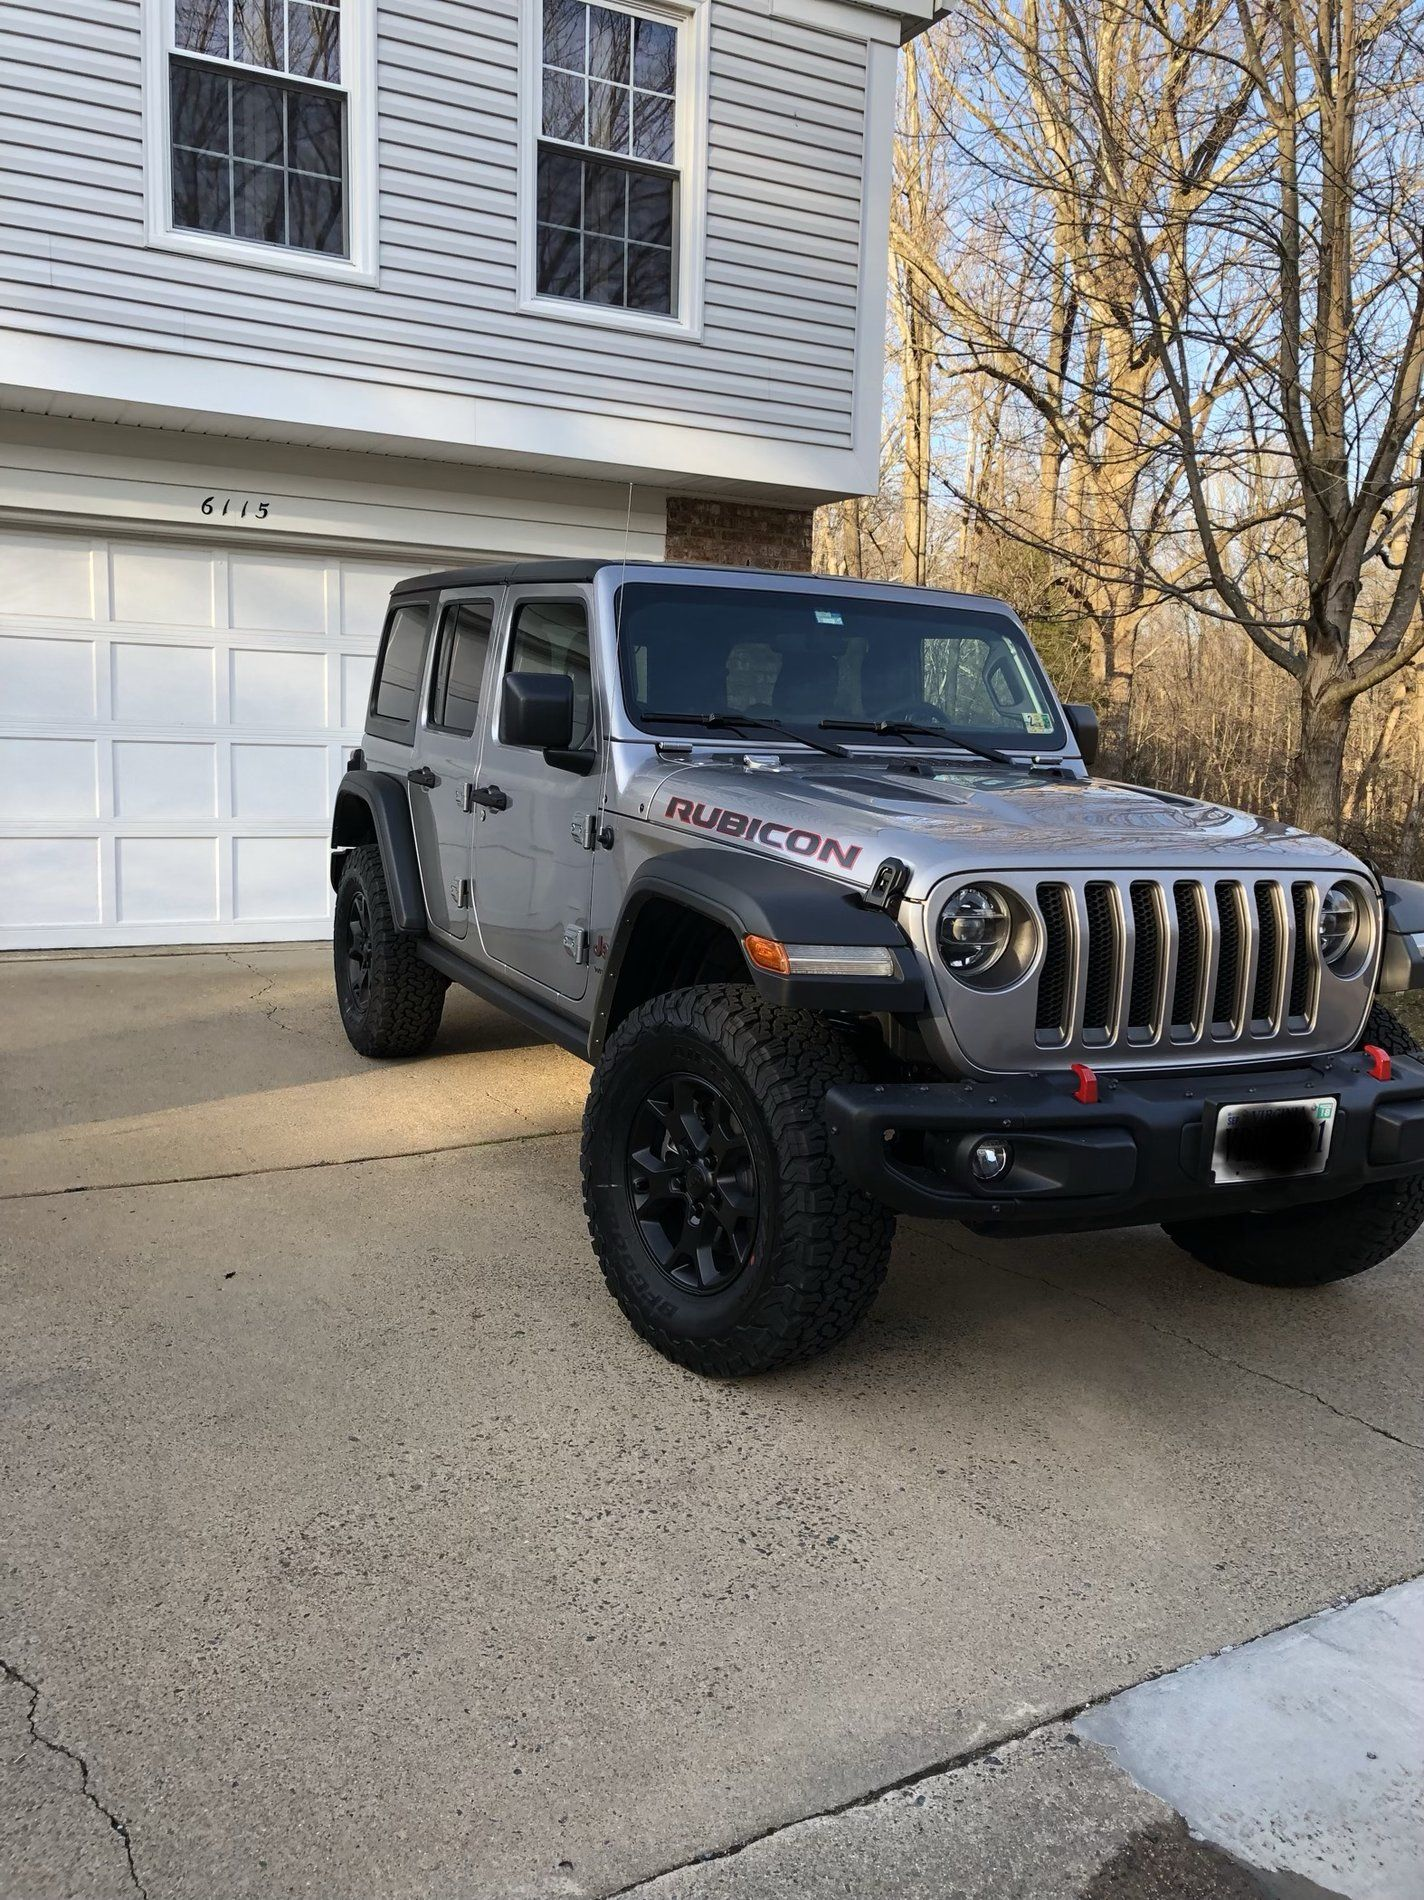 Introducing Our New 2018 Jeep Wrangler Jl 4 Lift 37 Tires Contact General Sales For More Information Phon Custom Jeep Wrangler Custom Jeep Jeep Wheels